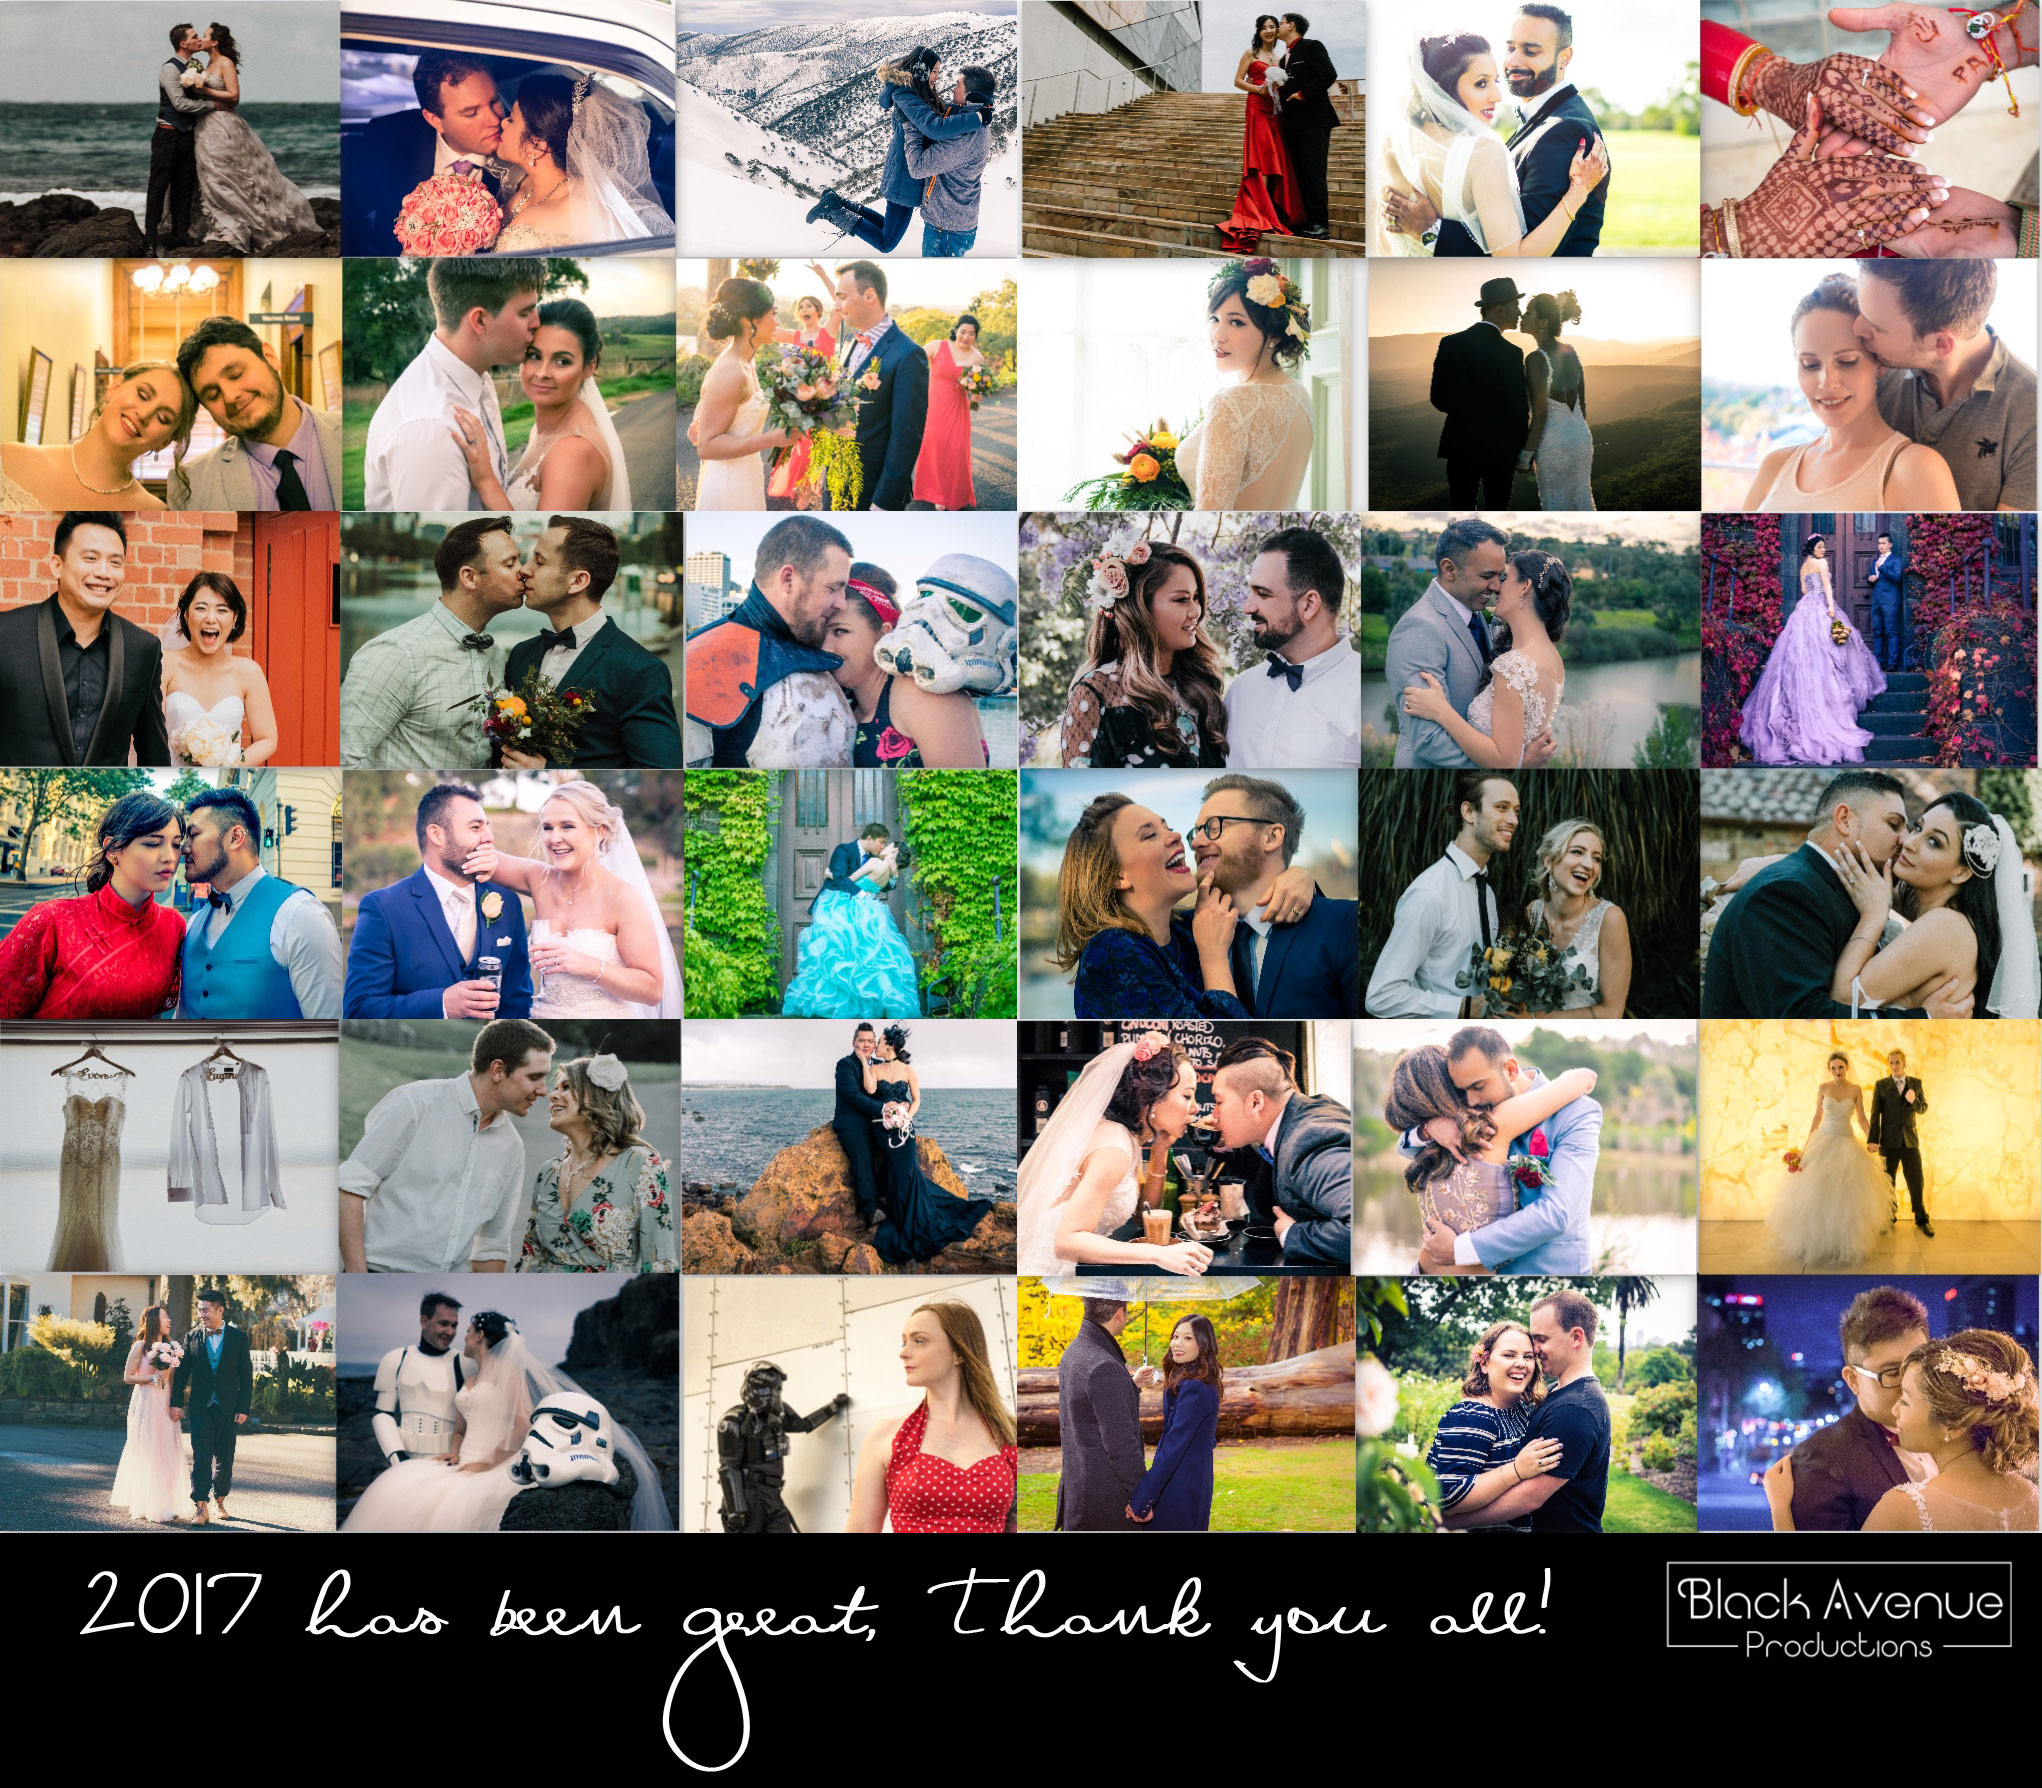 Black Avenue Productions collage image of 41 wedding shoots in 2017